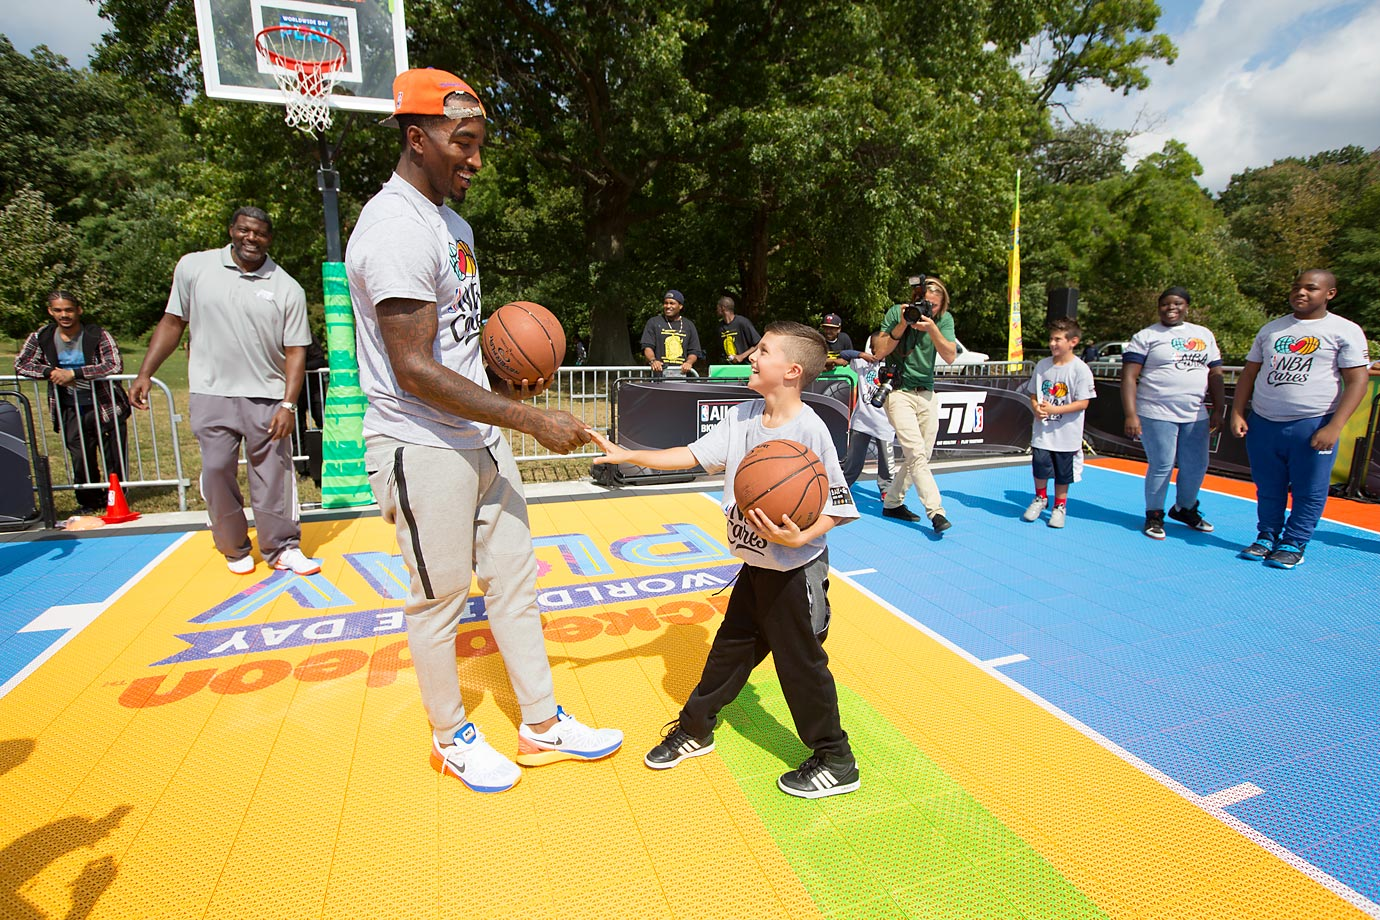 J.R. Smith of the New York Knicks participates during the Nickelodeon Worldwide Day of Play Basketball Clinic at Prospect Park, N.Y.